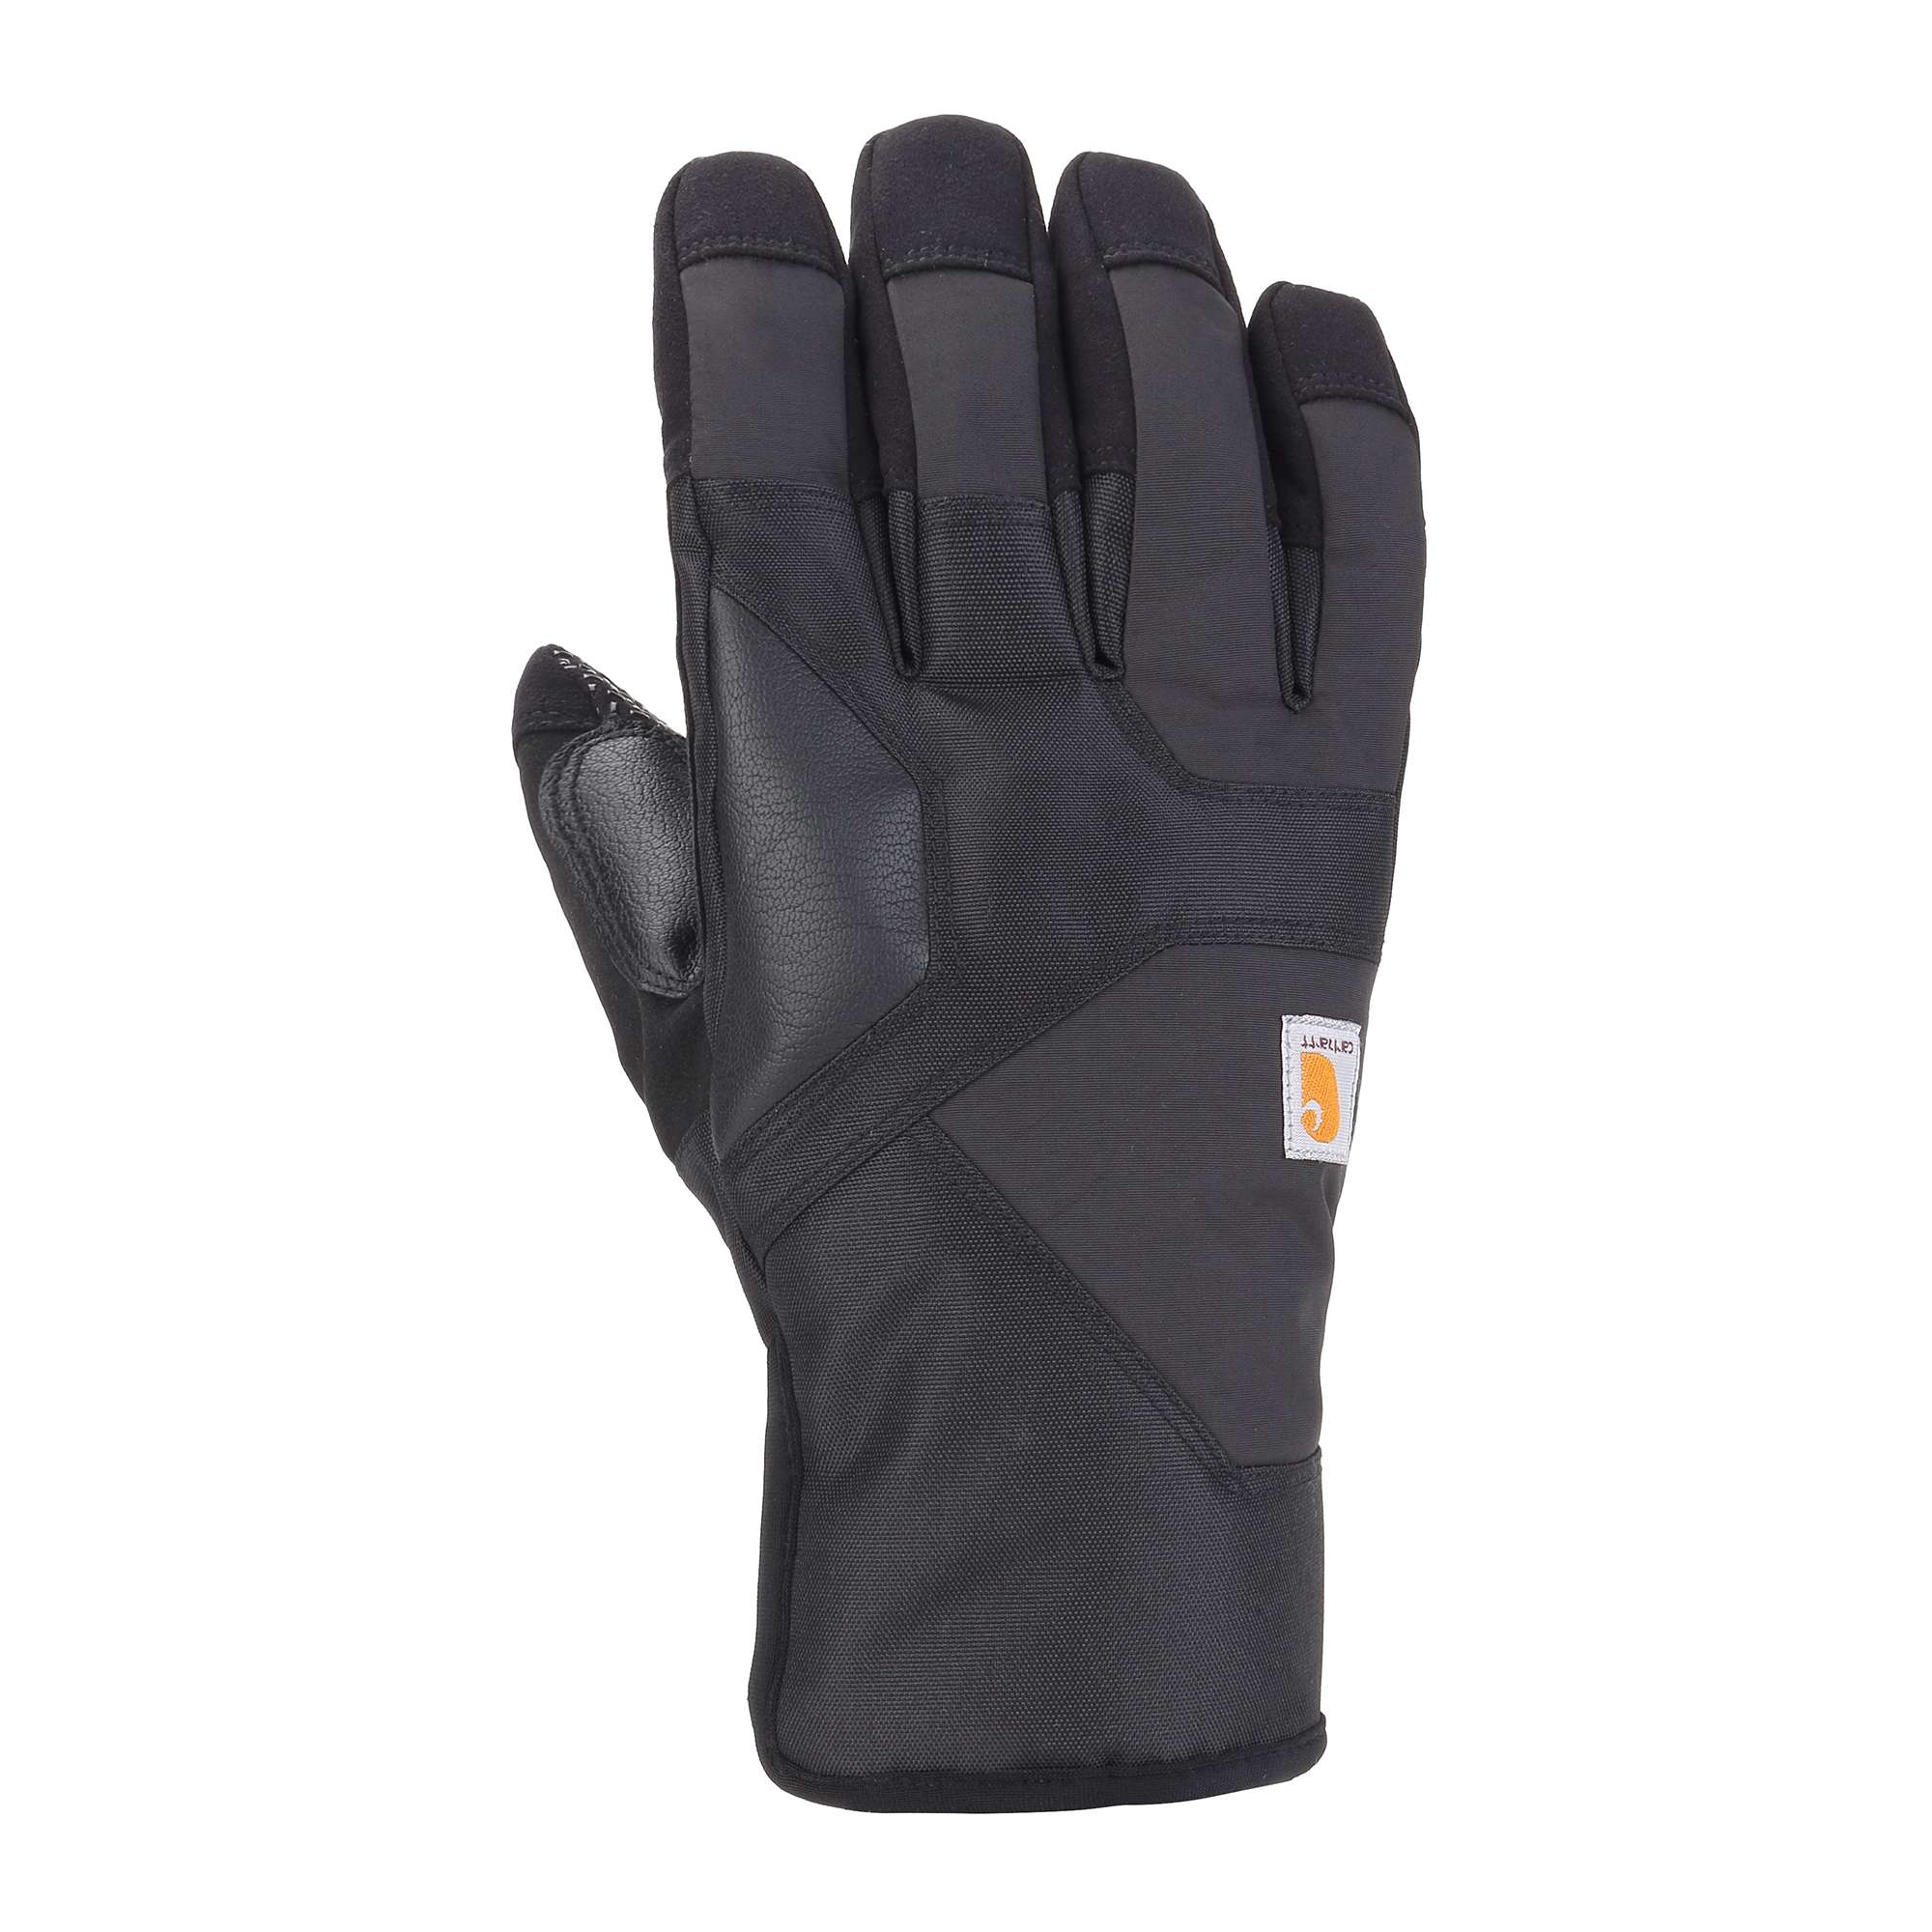 BAD AXE INSULATED GLOVE